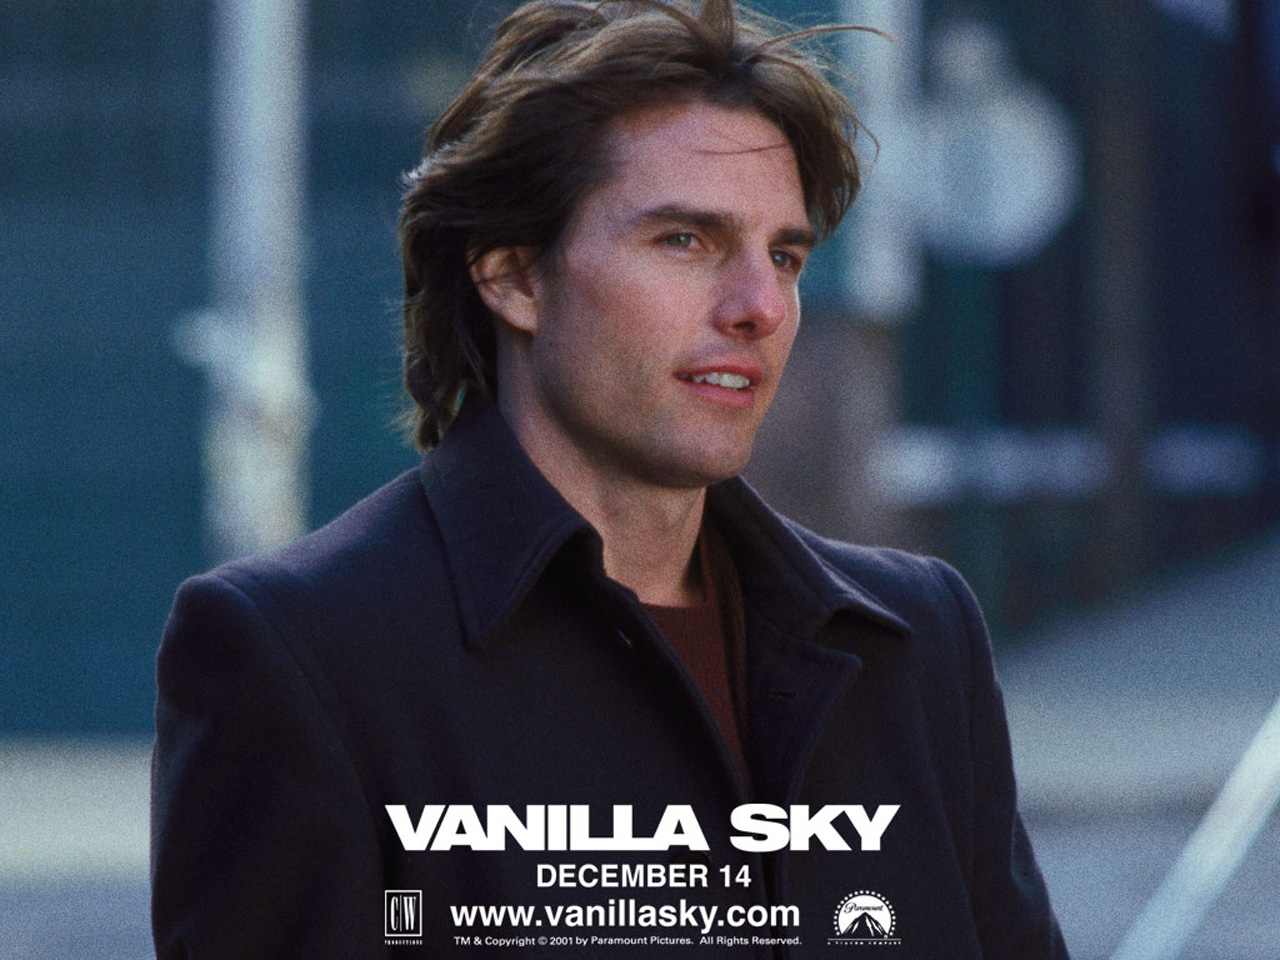 Tom Cruise - Images Gallery